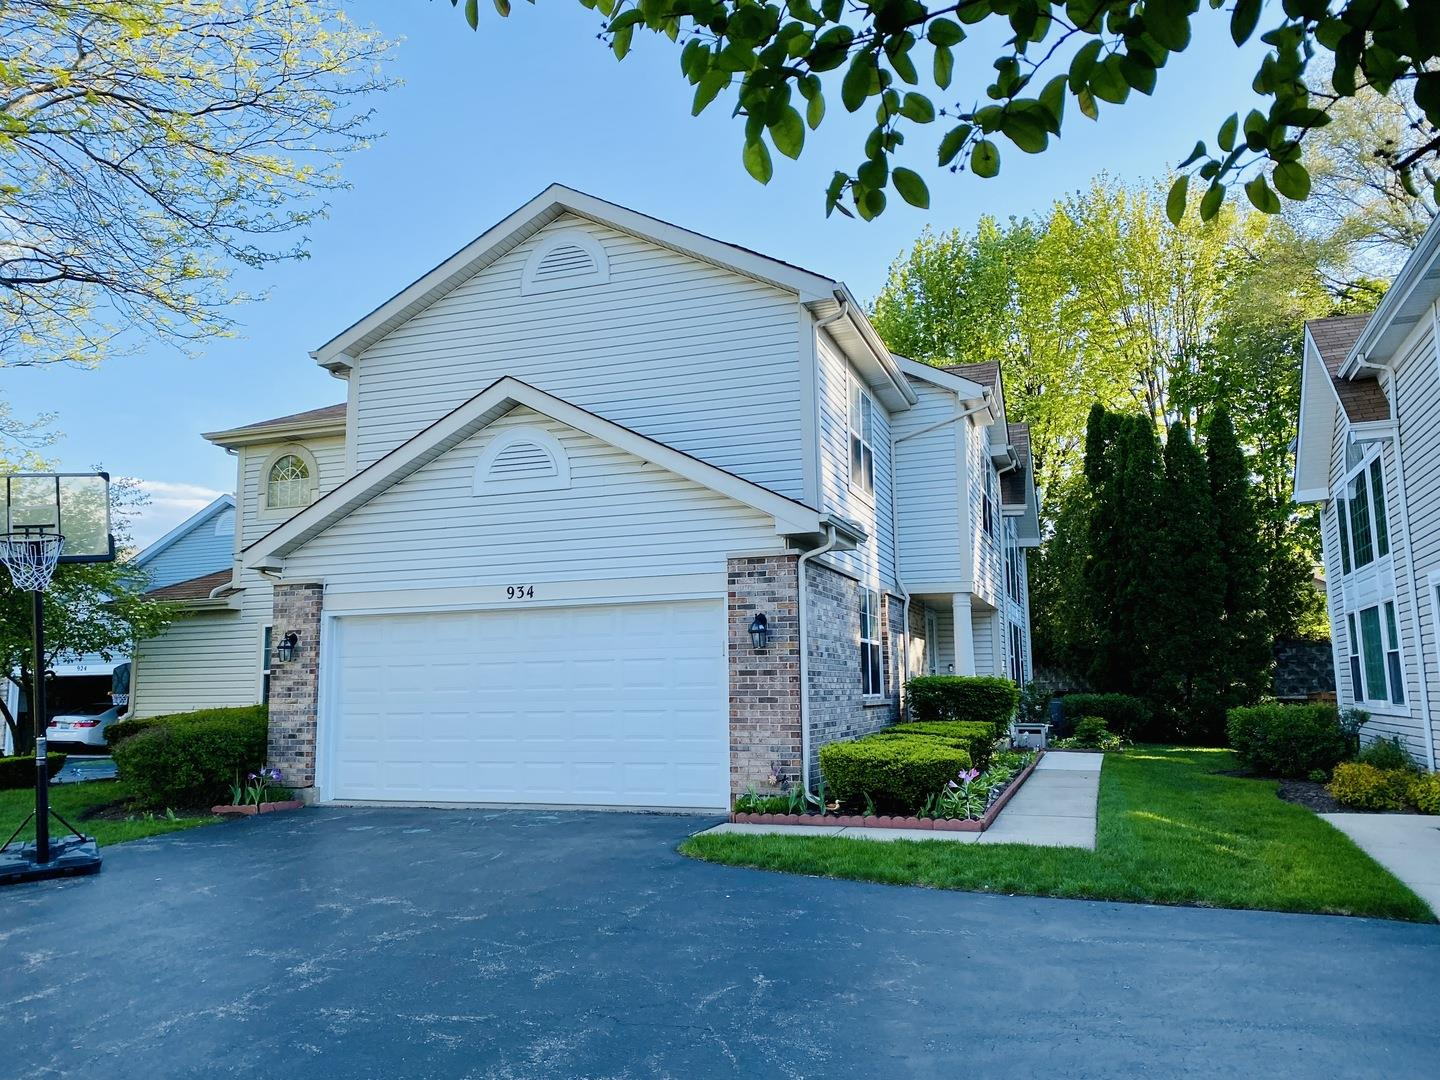 934 SWEETFLOWER Drive, Hoffman Estates, IL 60169 - #: 11087438